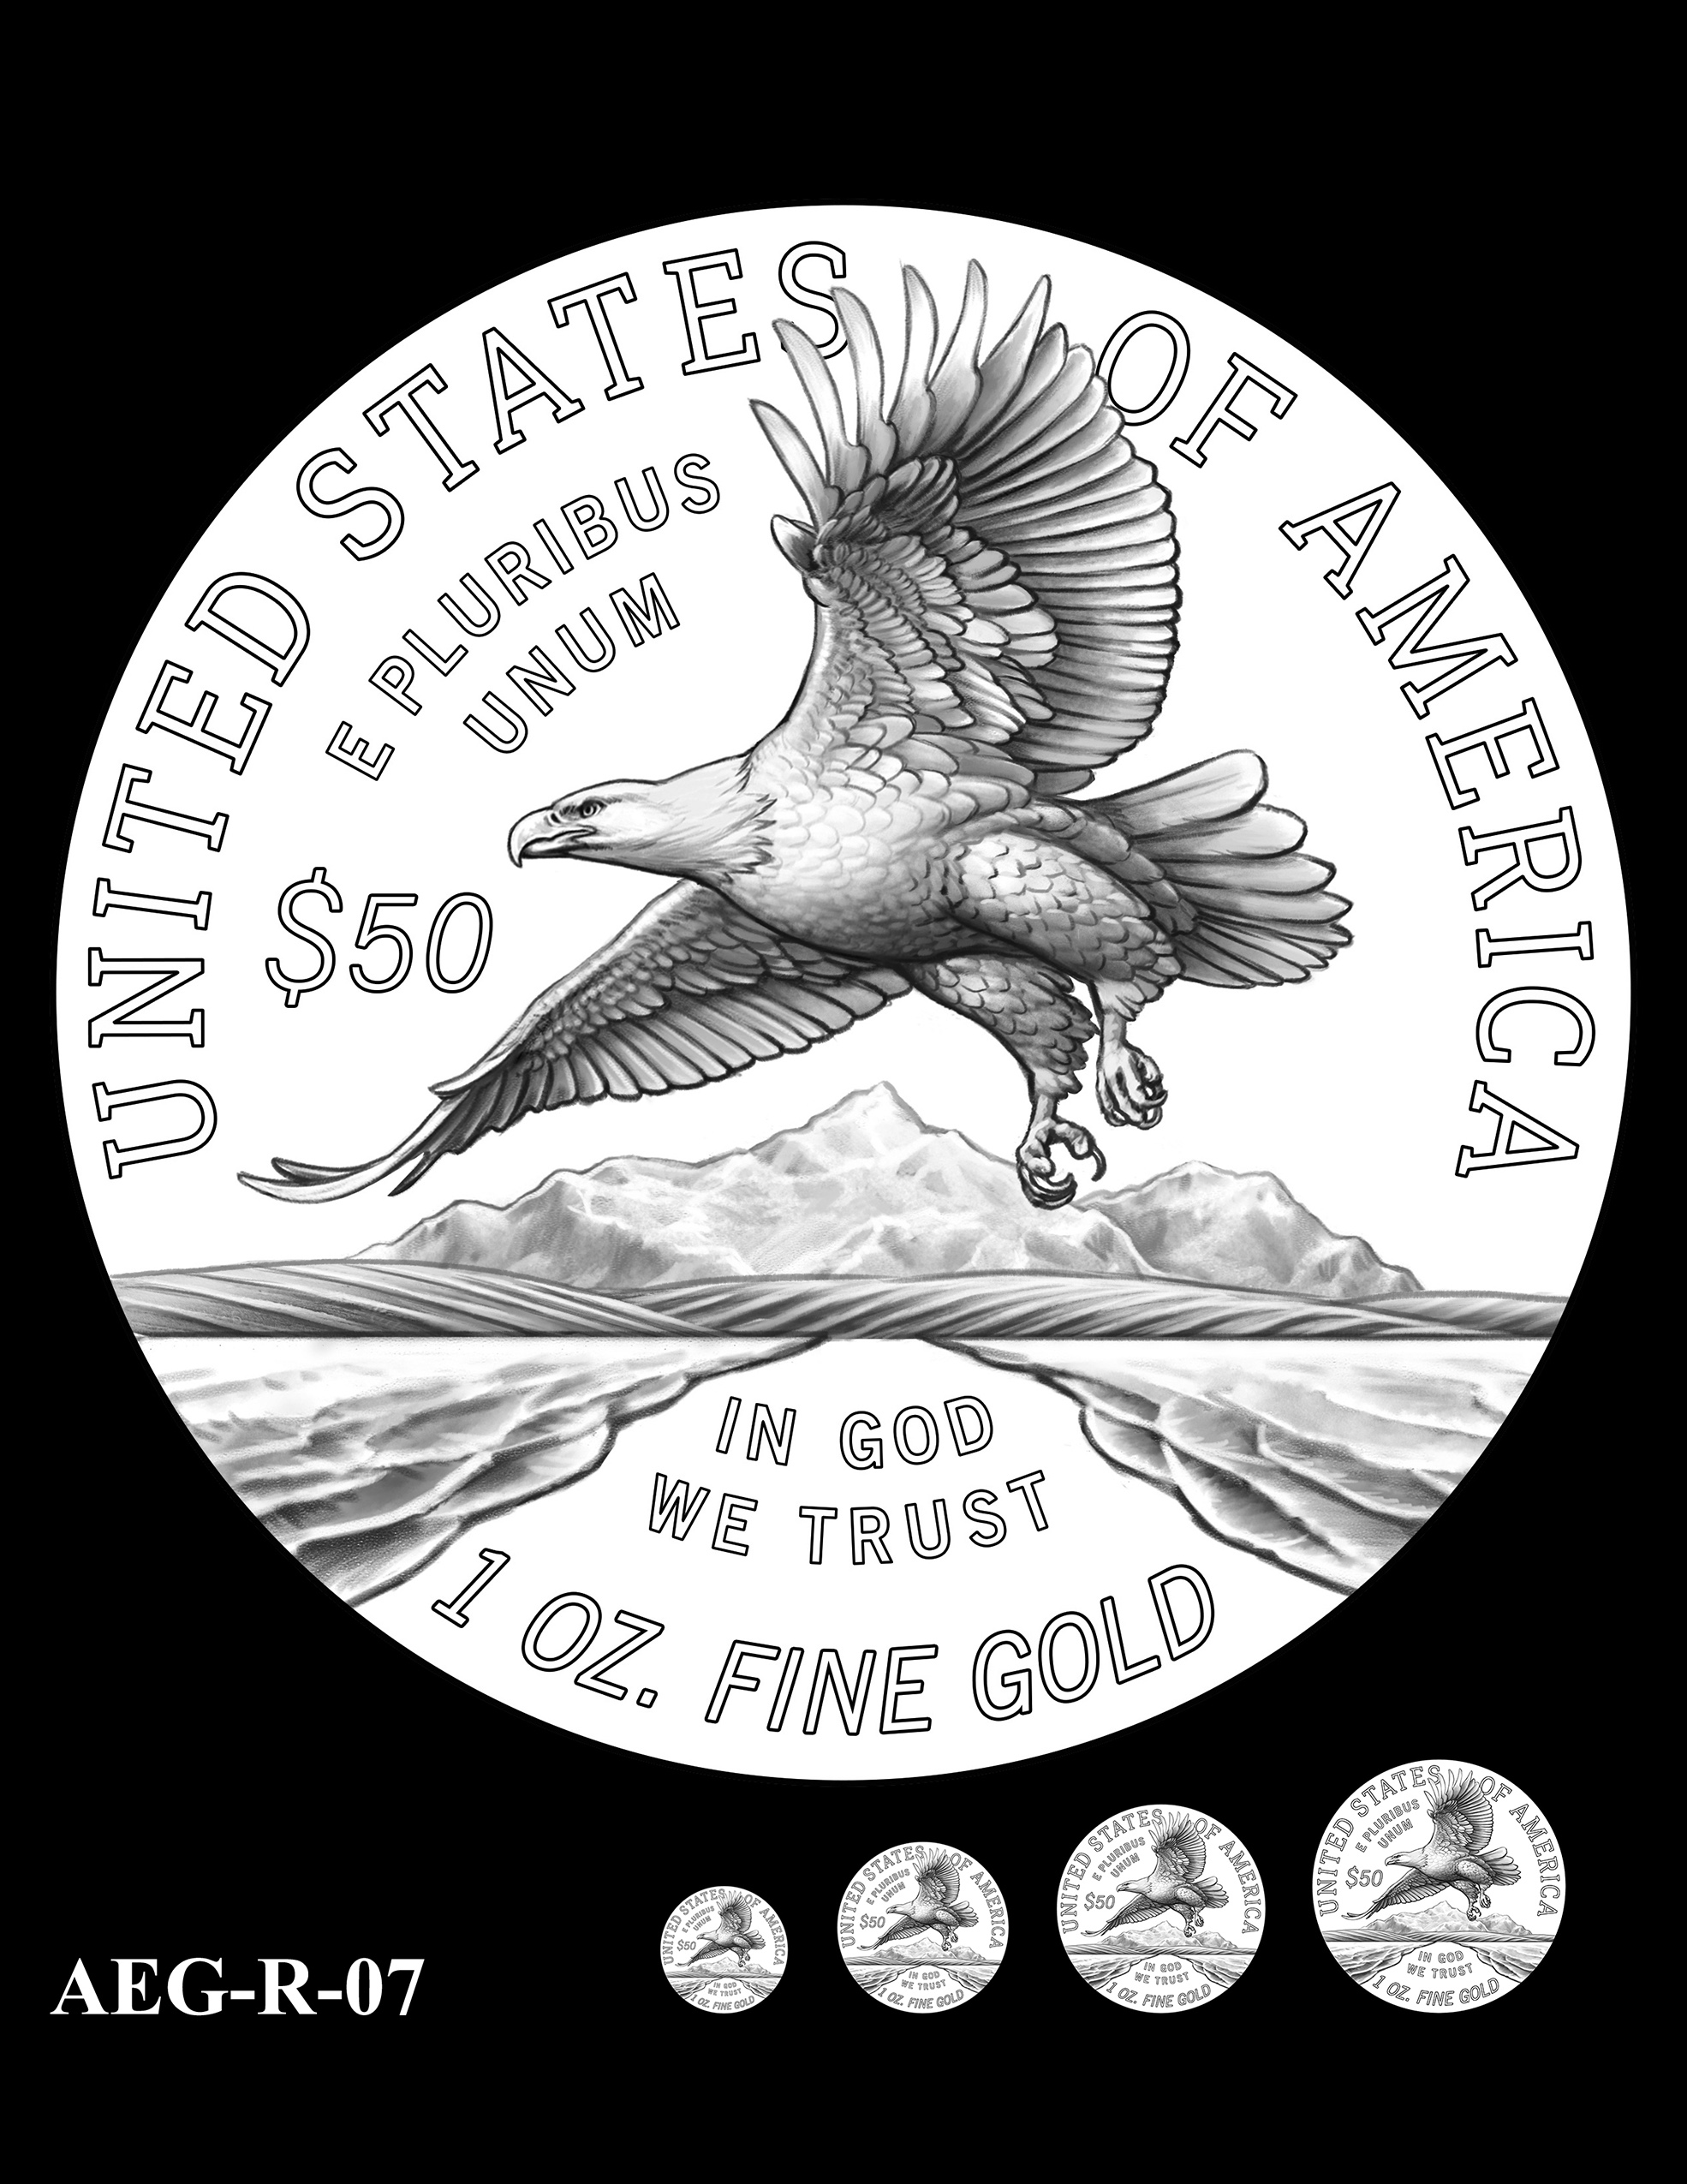 AEG-R-07 -- American Eagle Proof and Bullion Gold Coin - Reverse